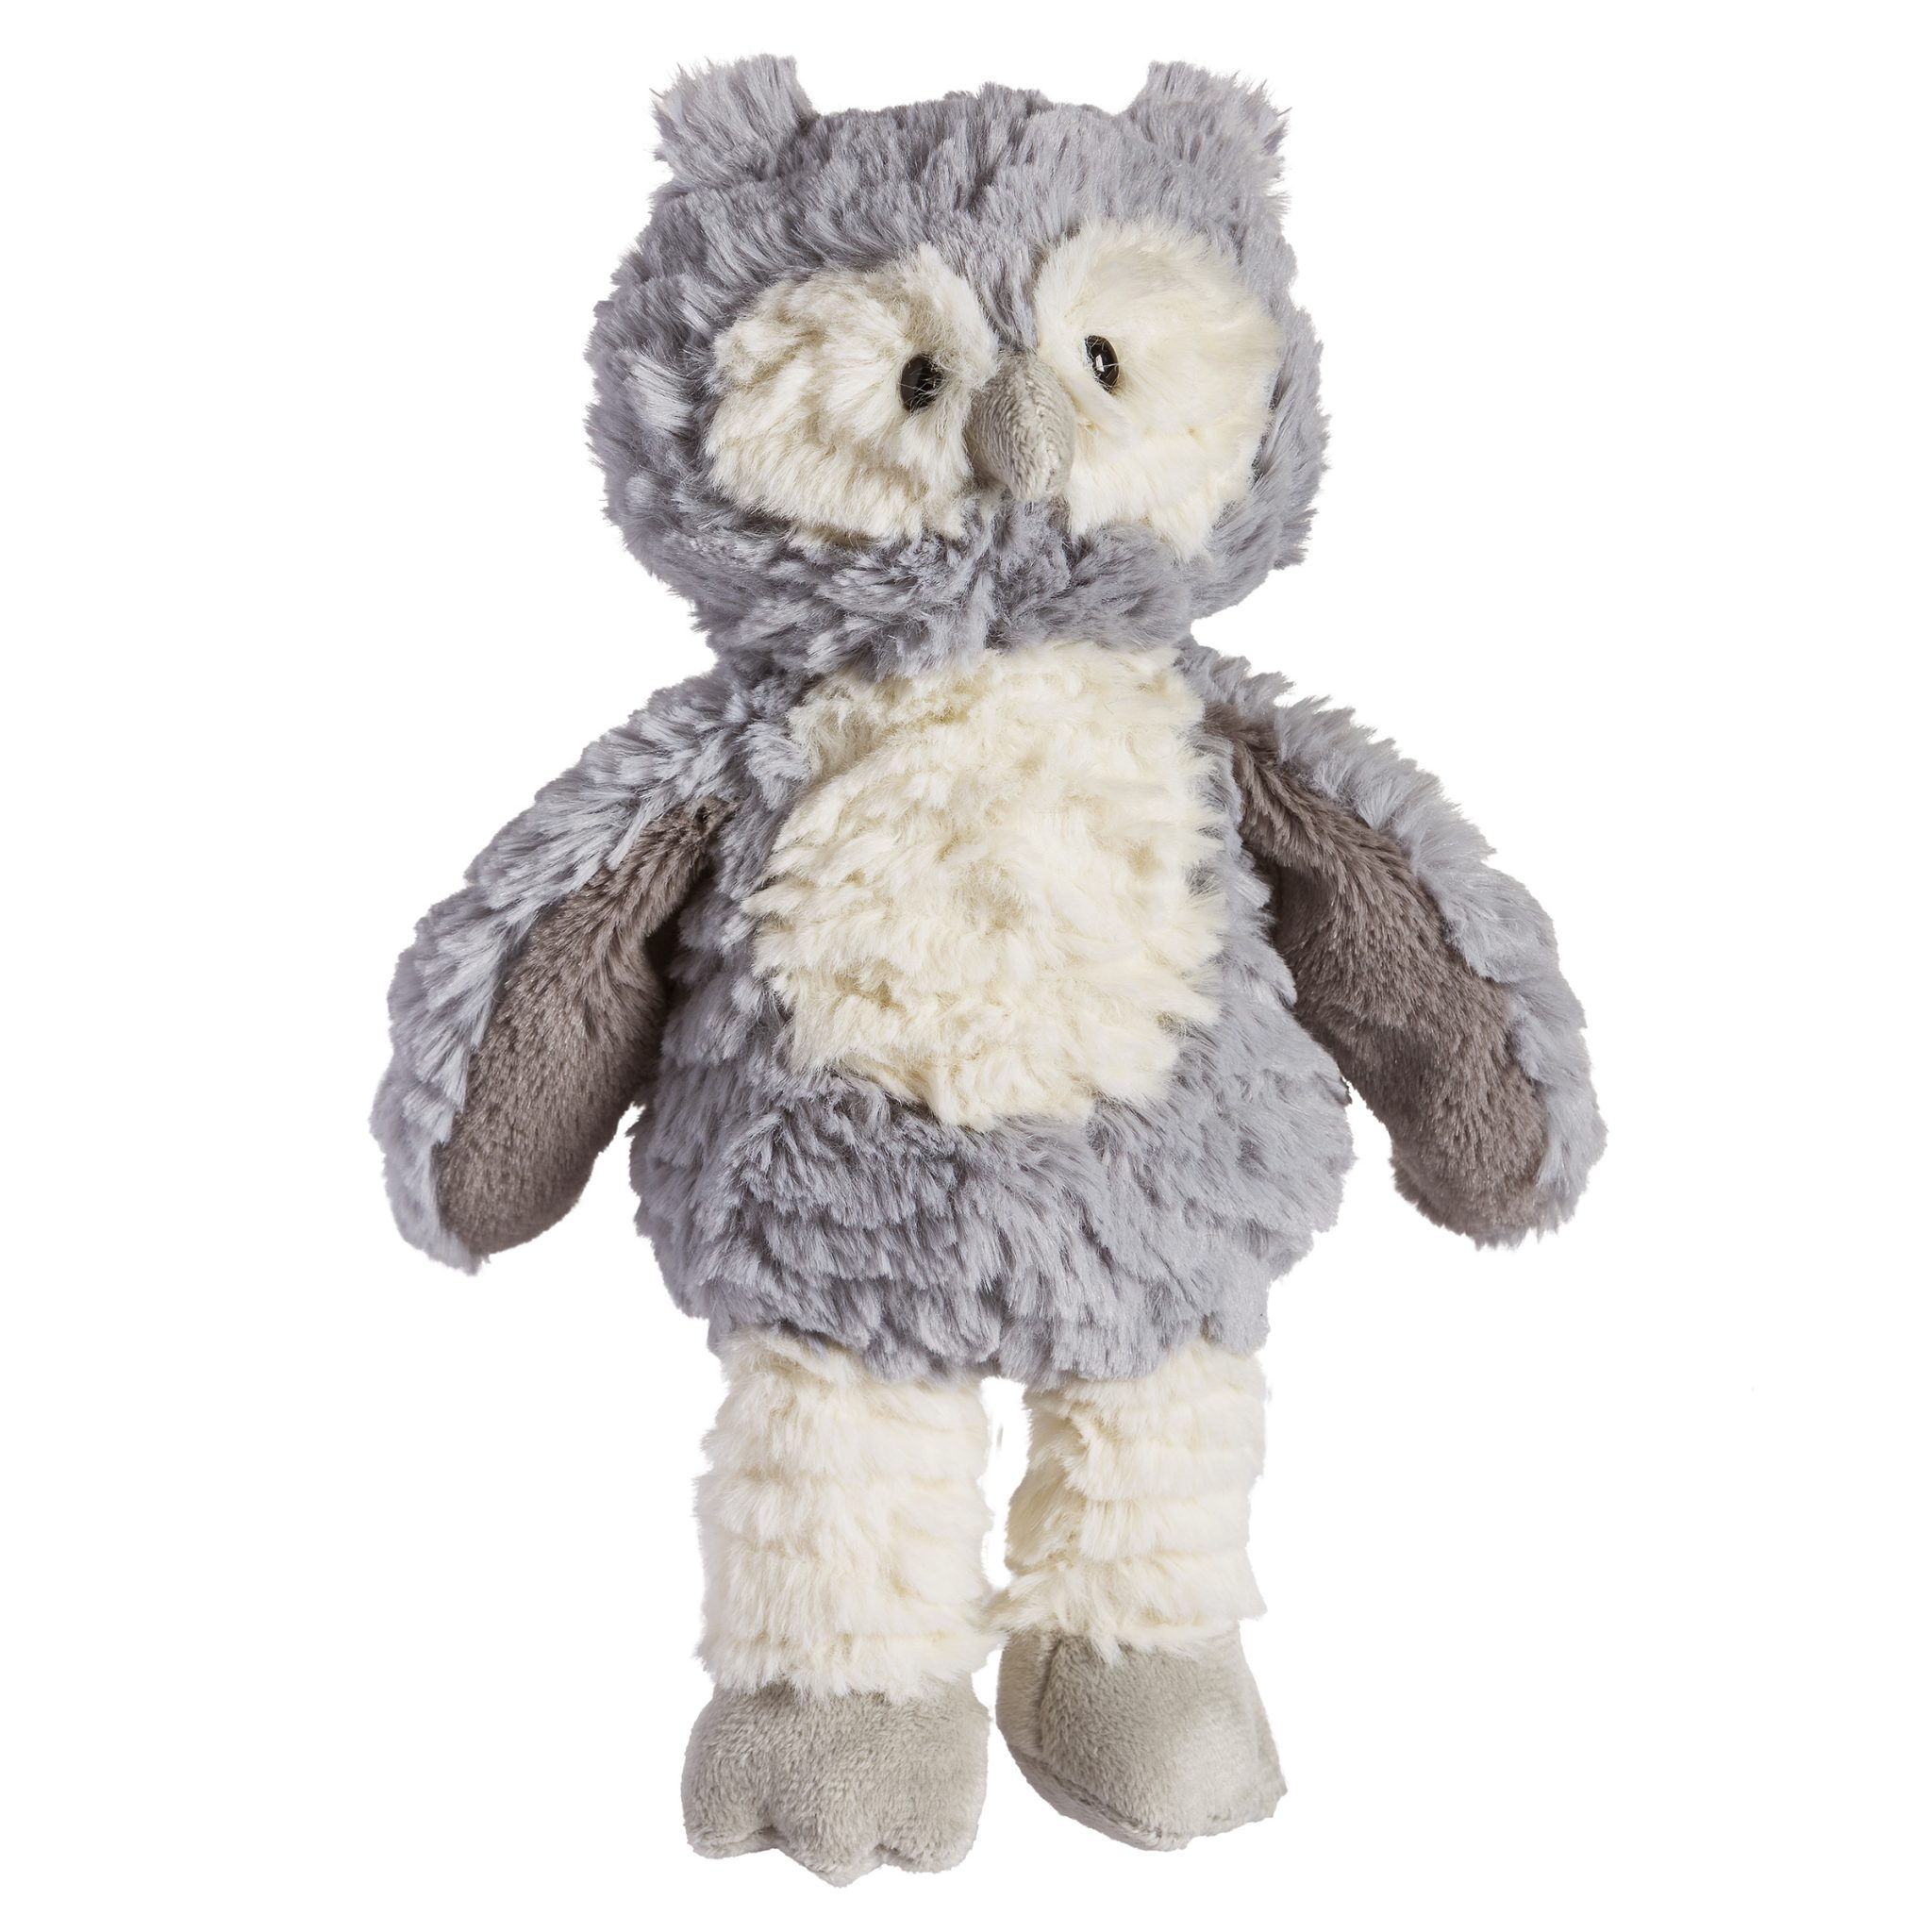 41283 Marshmallow Junior Swoops Owl